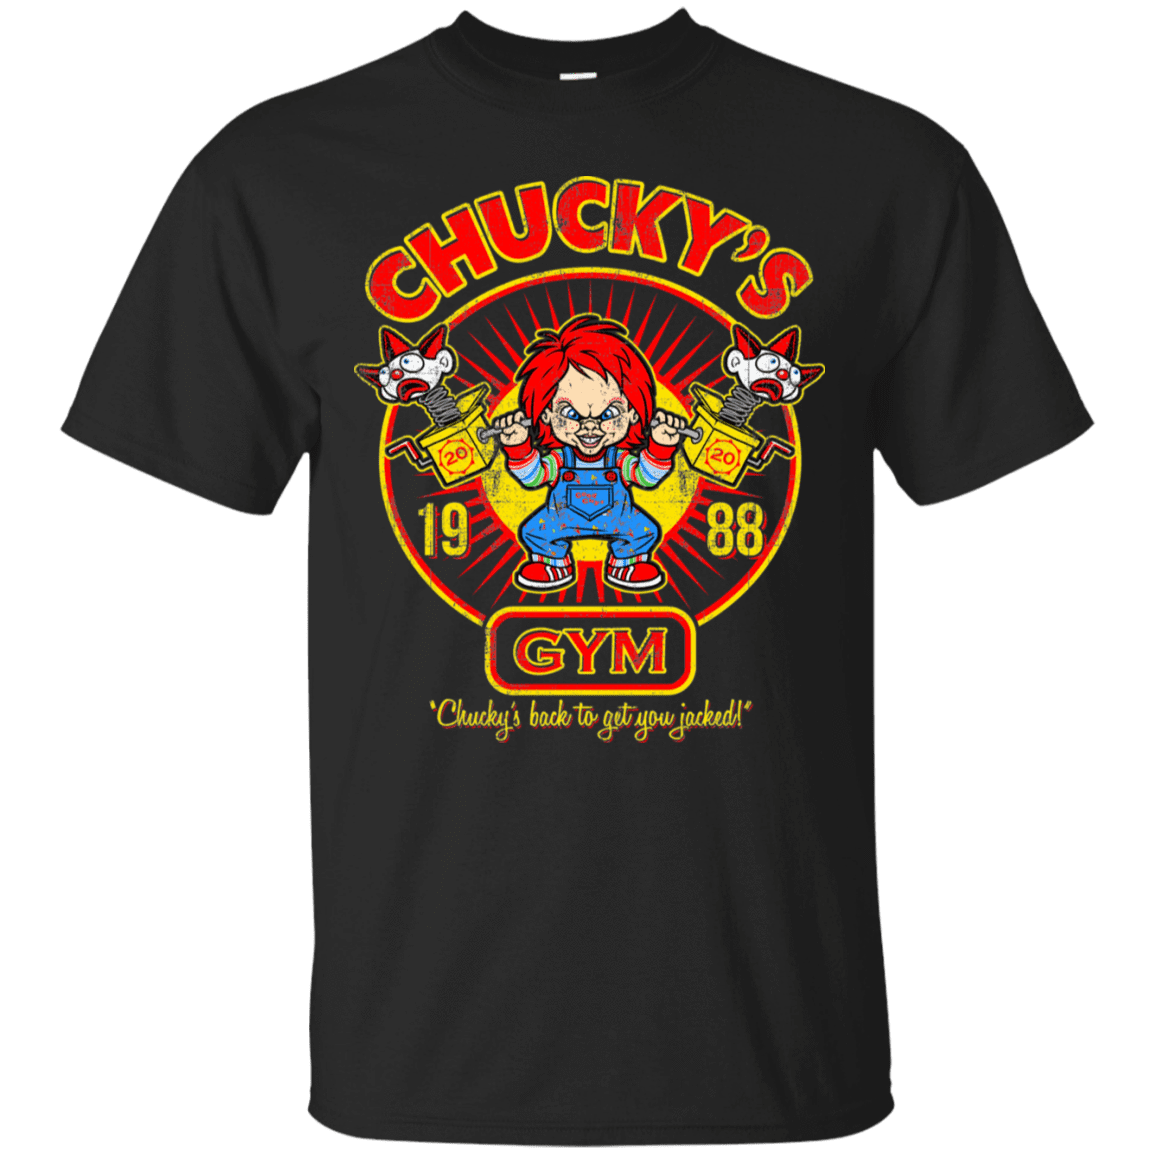 Chucky Gym Tee Good Guy T-Shirt